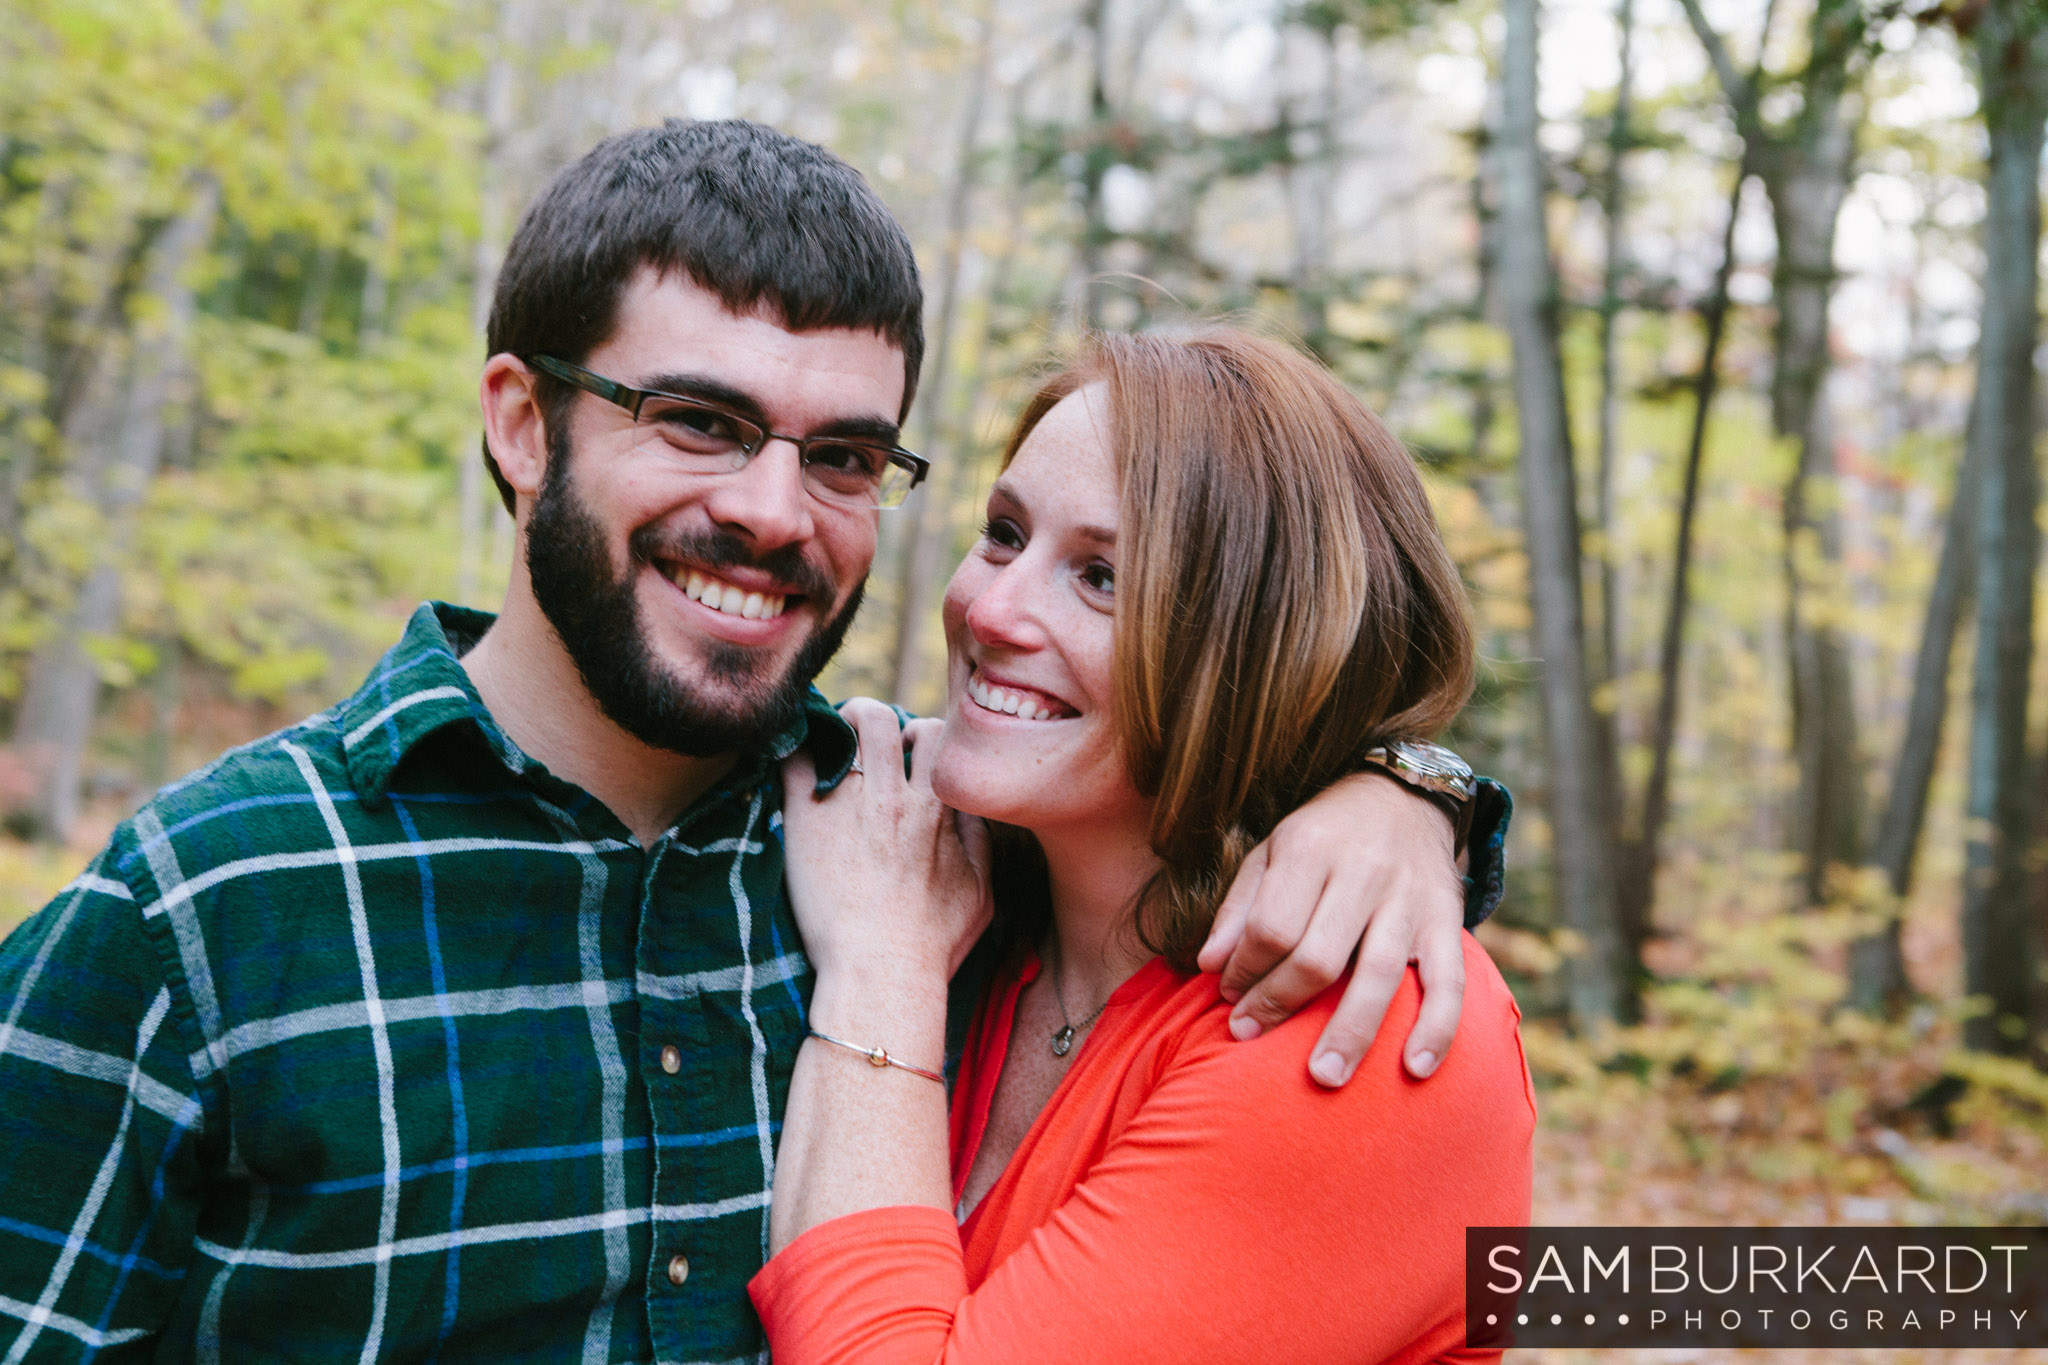 samburkardt-fall-engagement-connecticut-foliage-southford-falls-state-park_0015.jpg